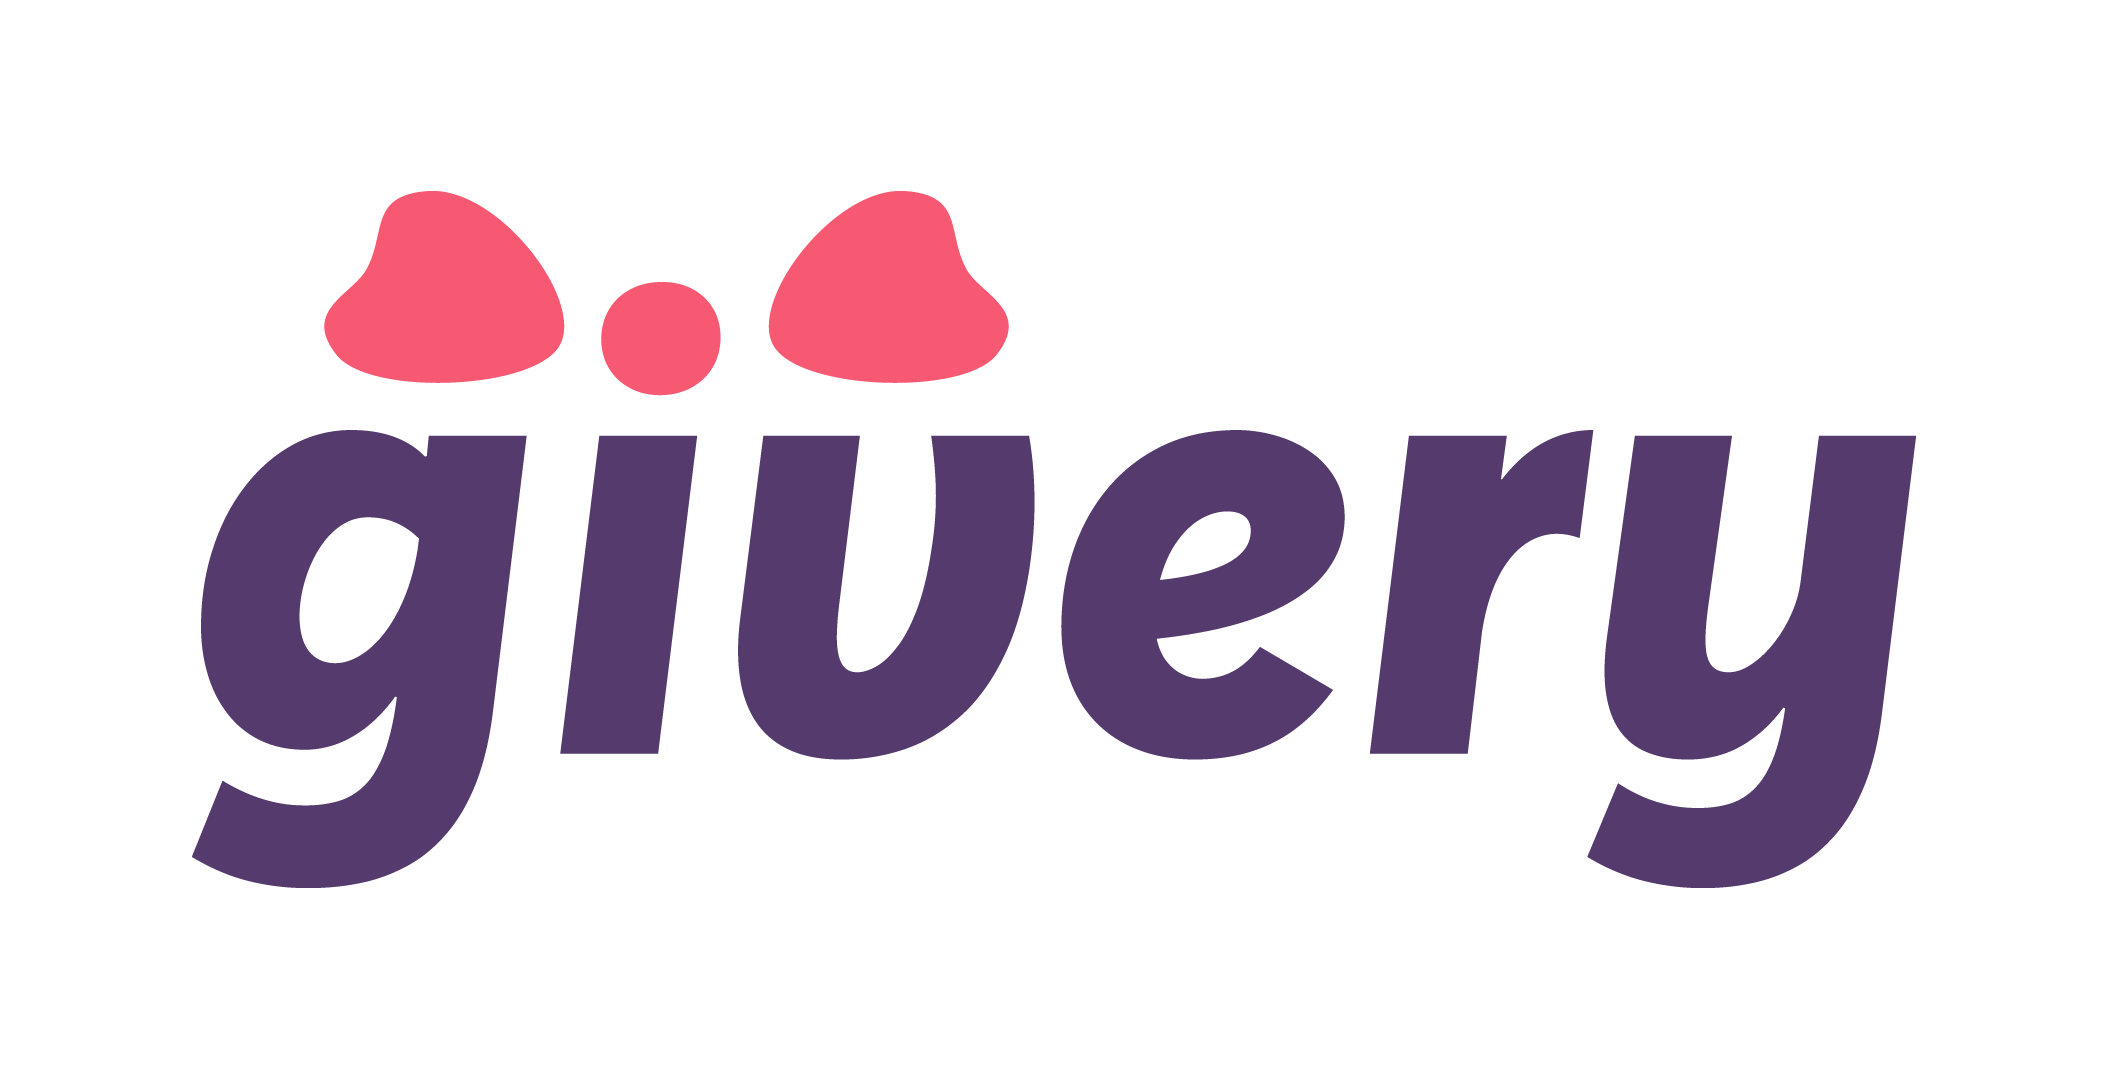 Givery.cz